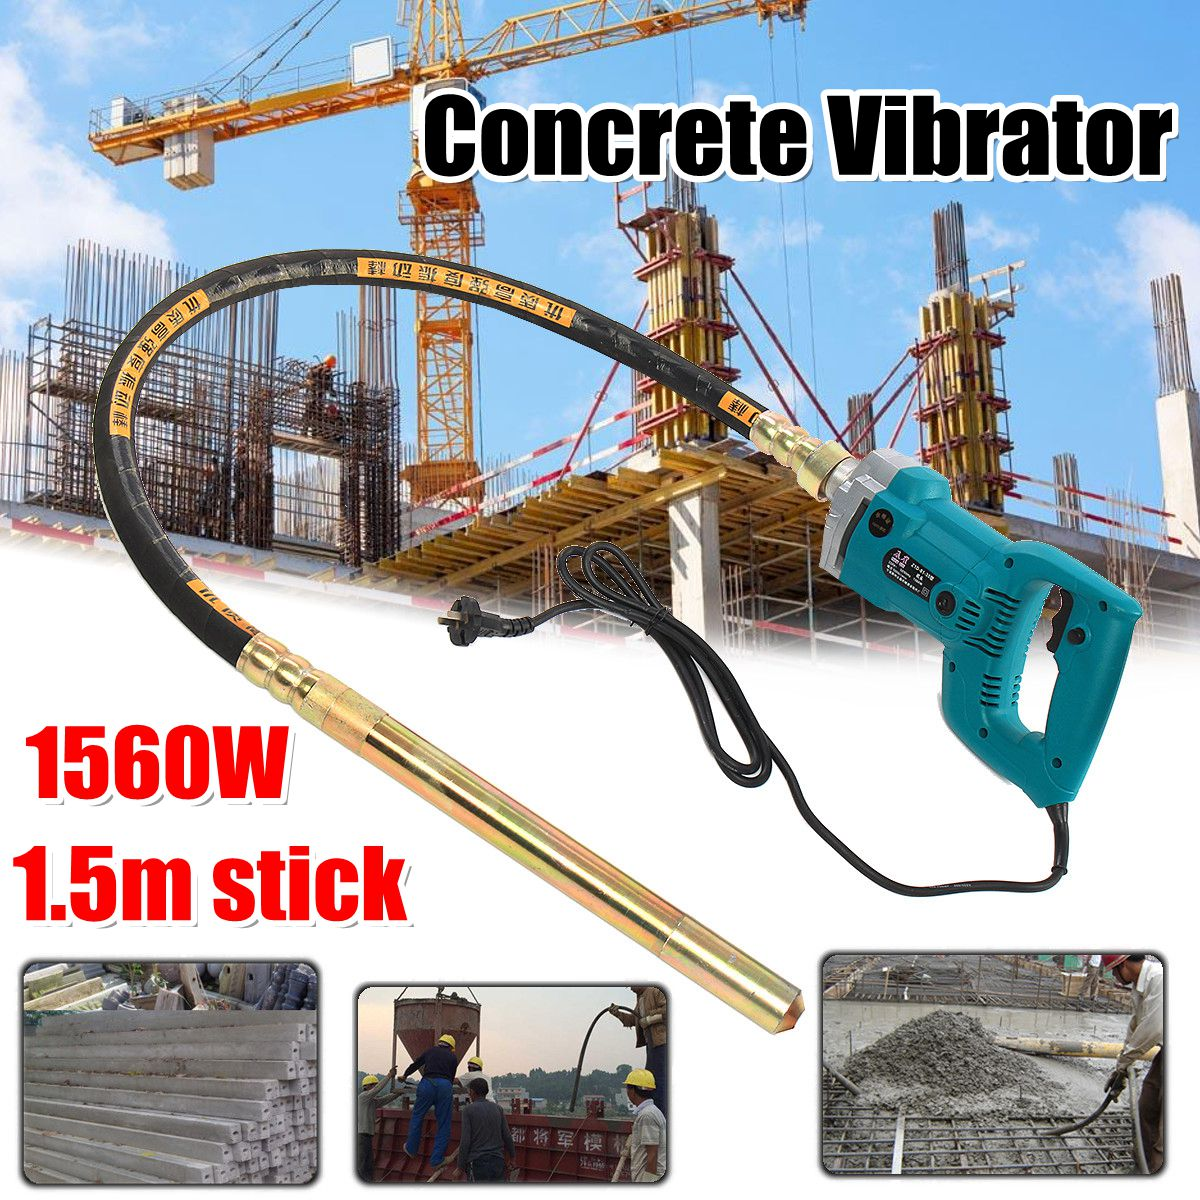 800W/1200W/1560W Concrete Vibrators Electric Cement Soil Mixer With Stick 3/4 HP- Heavy   Remove Air Bubbles & Level 5000 VPM